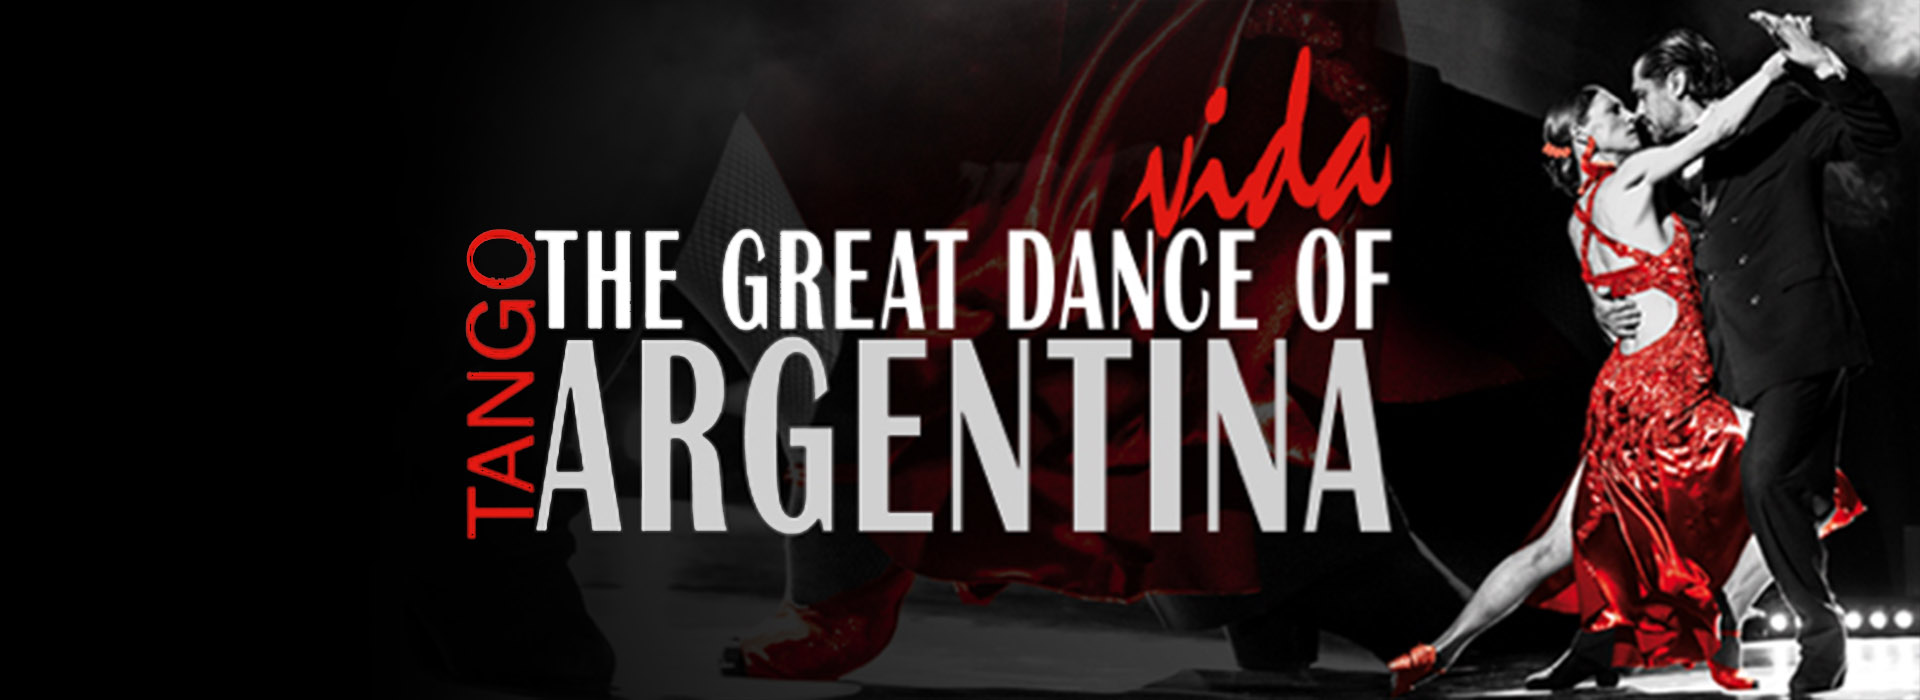 The Great Dance of Argentina